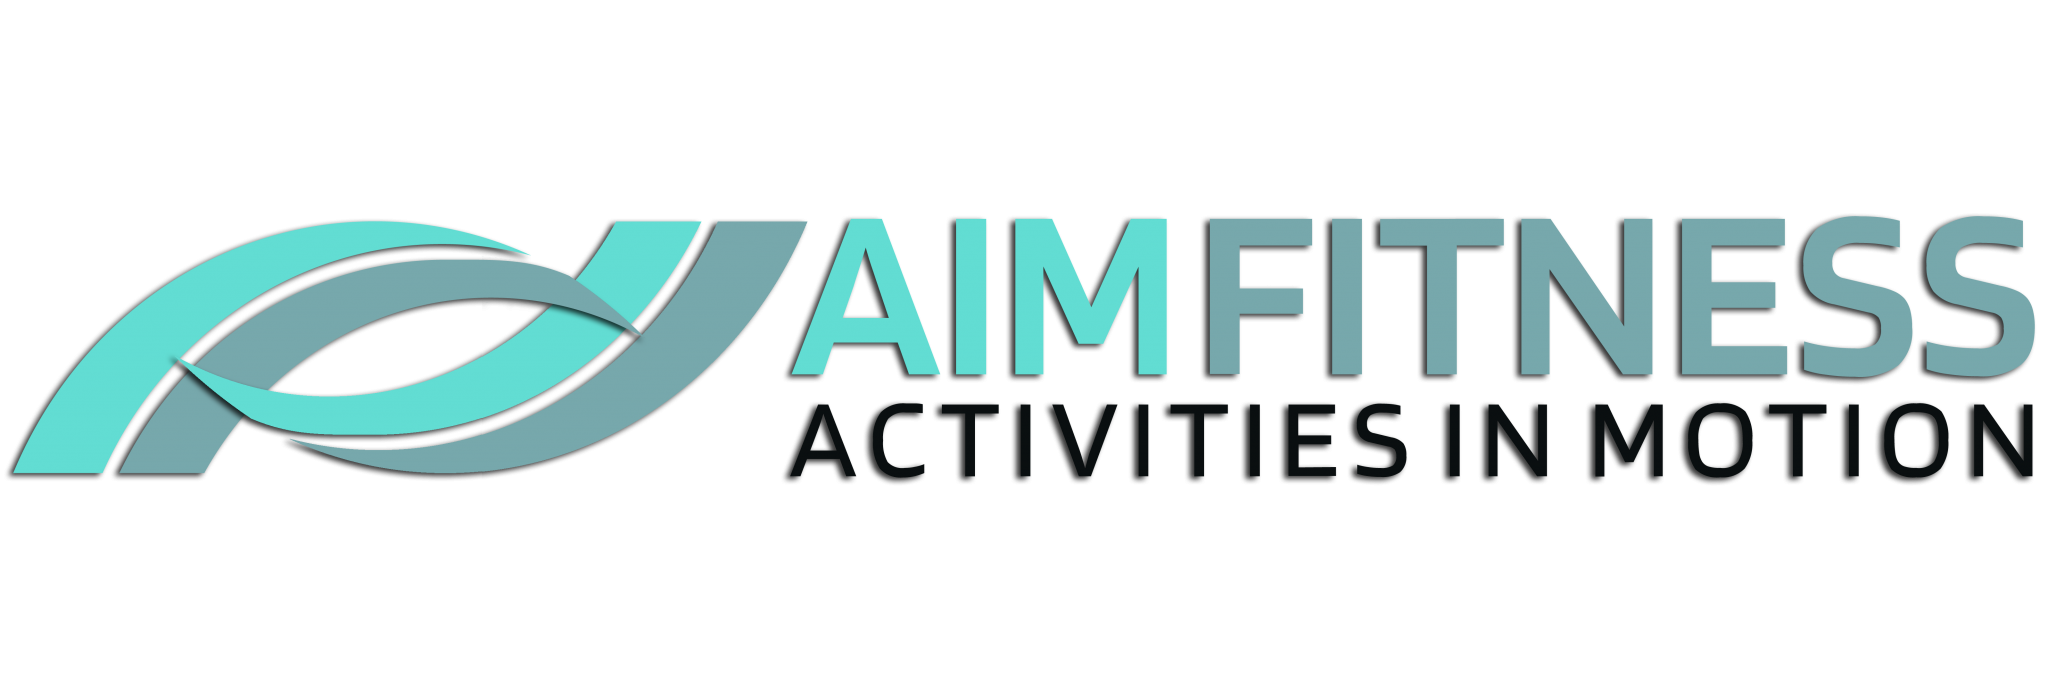 A.I.M Fitness - Activities In Motion